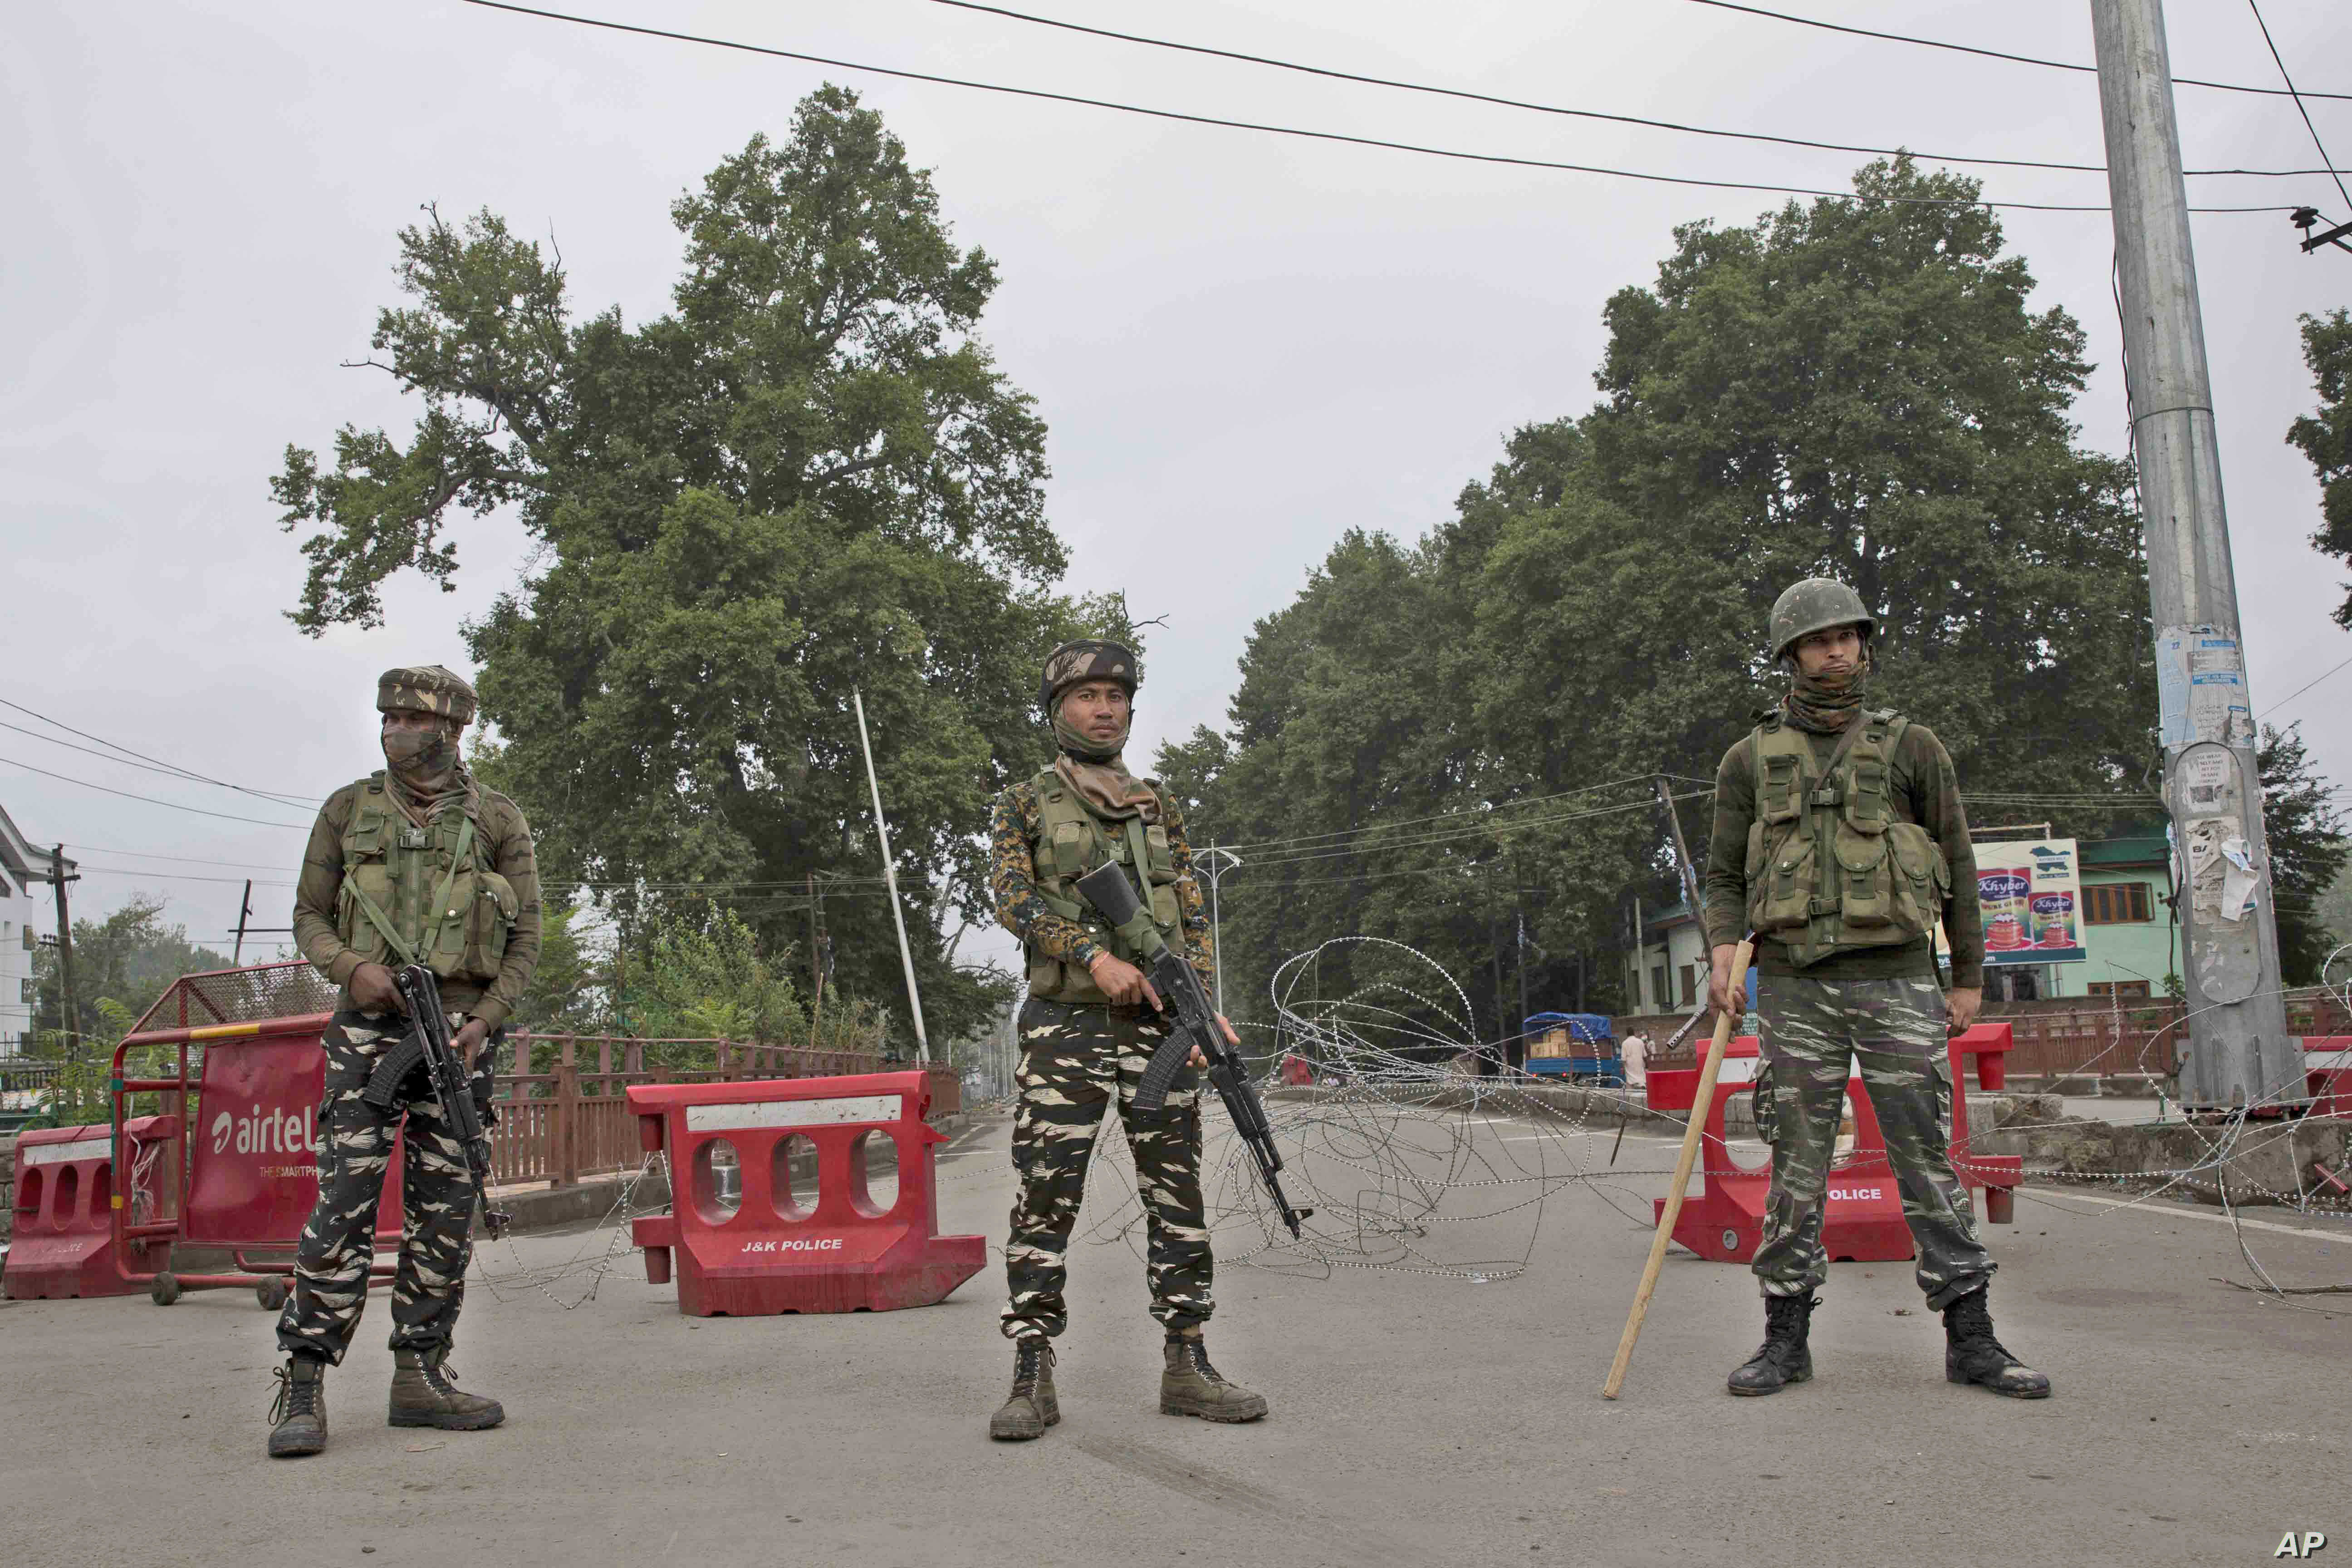 Pakistan Reports Deadly Clashes With India in Kashmir